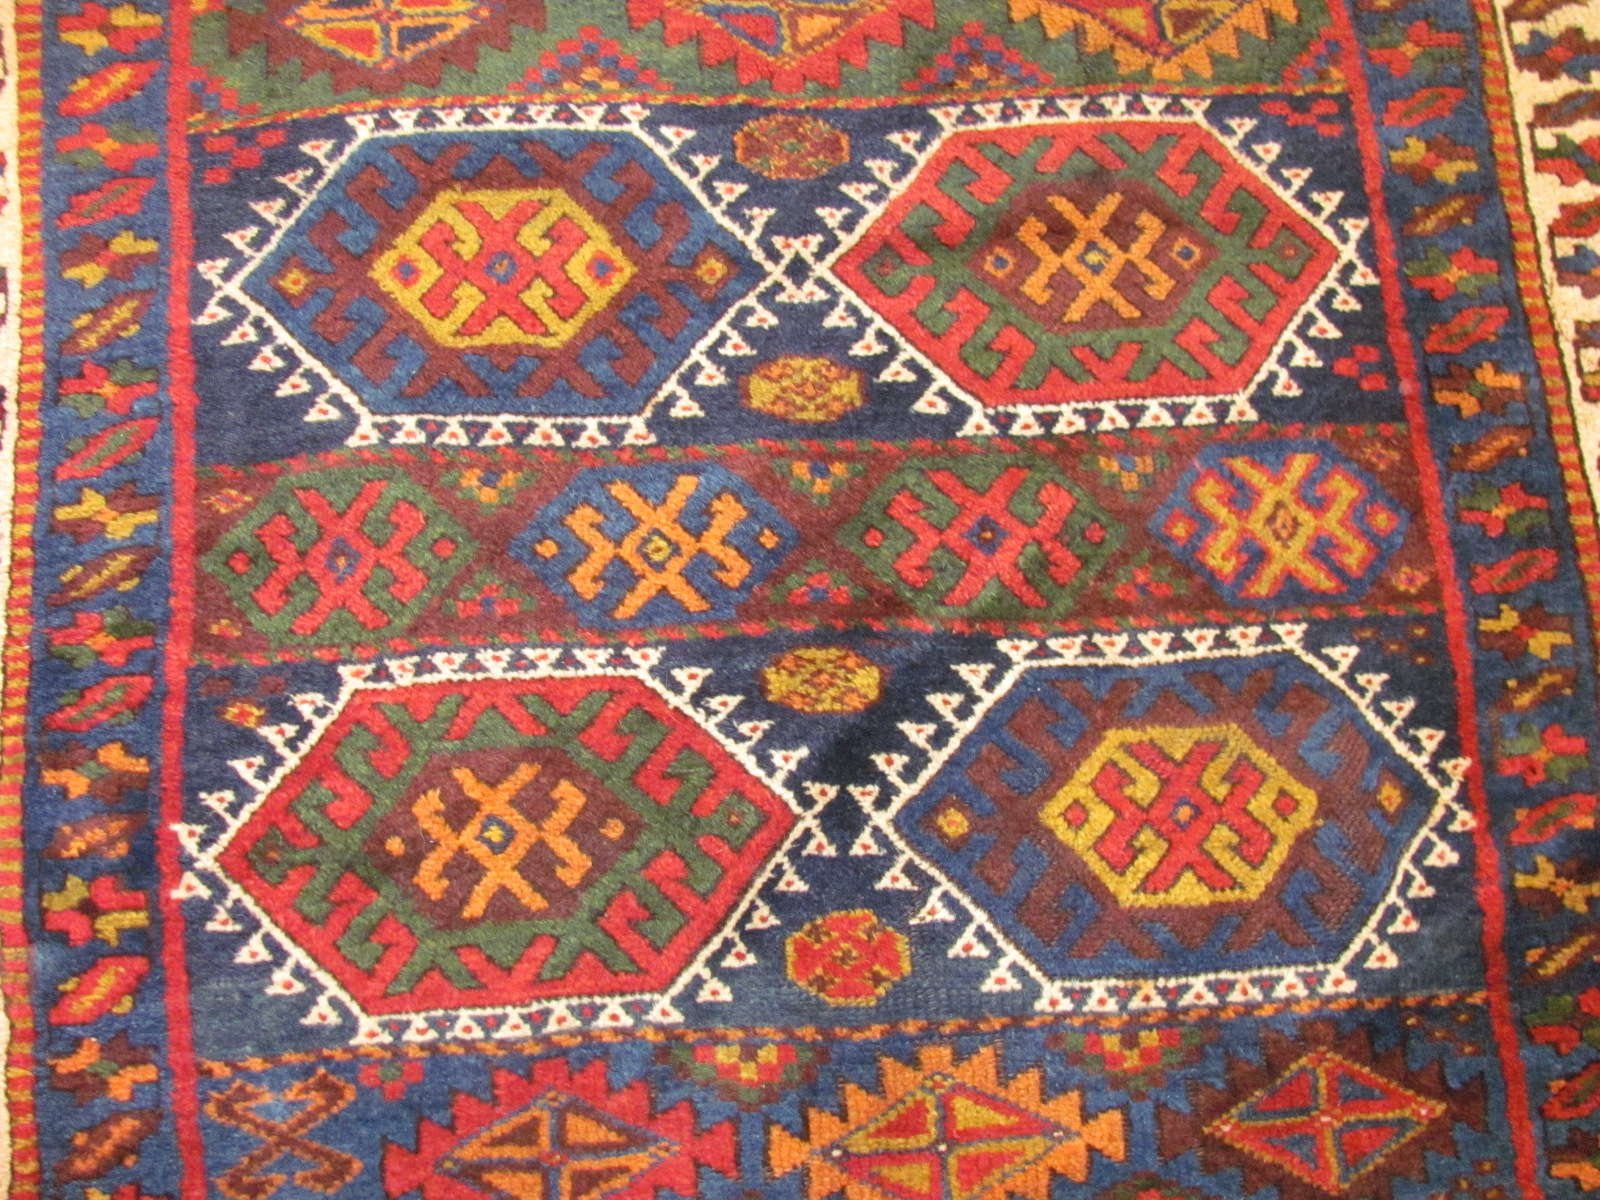 24554 antique persian joffee kurd rug 4,9x7,9 -2